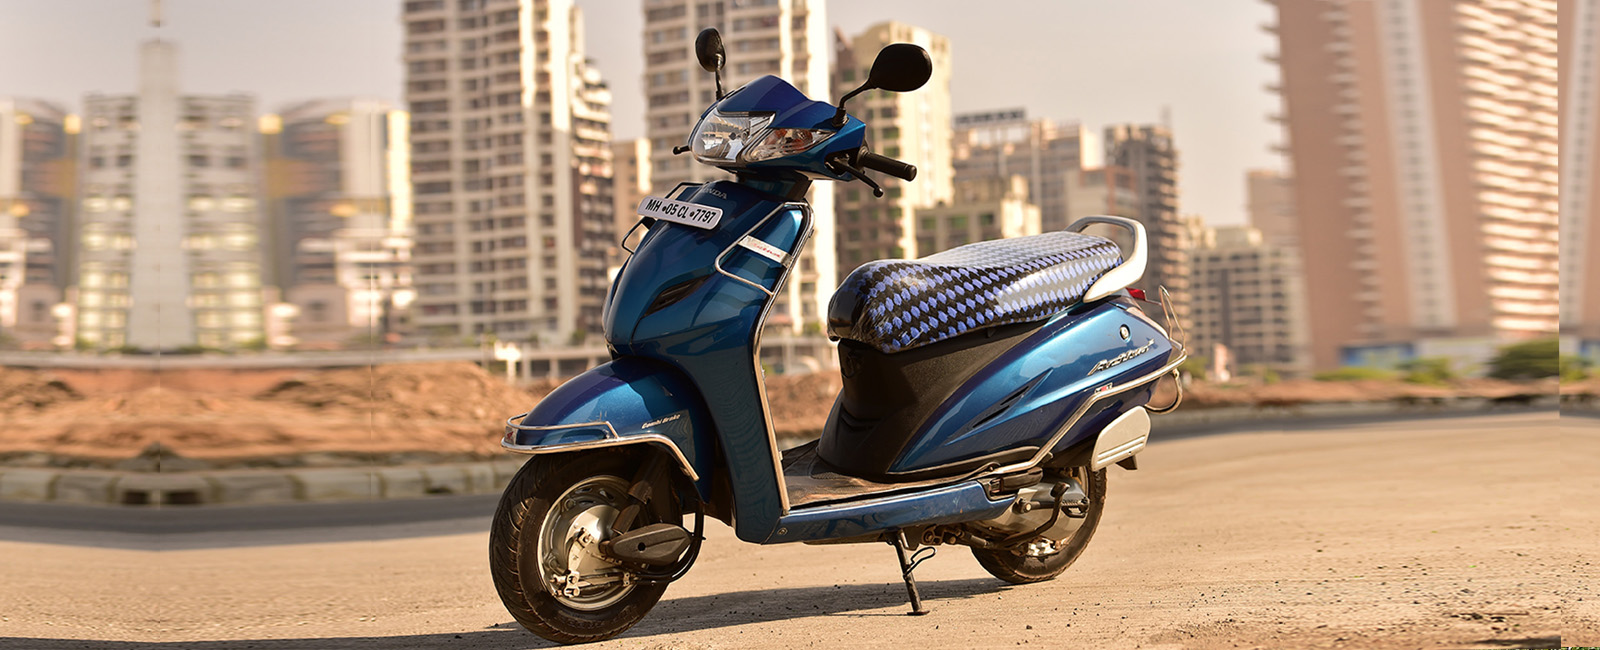 Activa-Rental-in-Udaipur